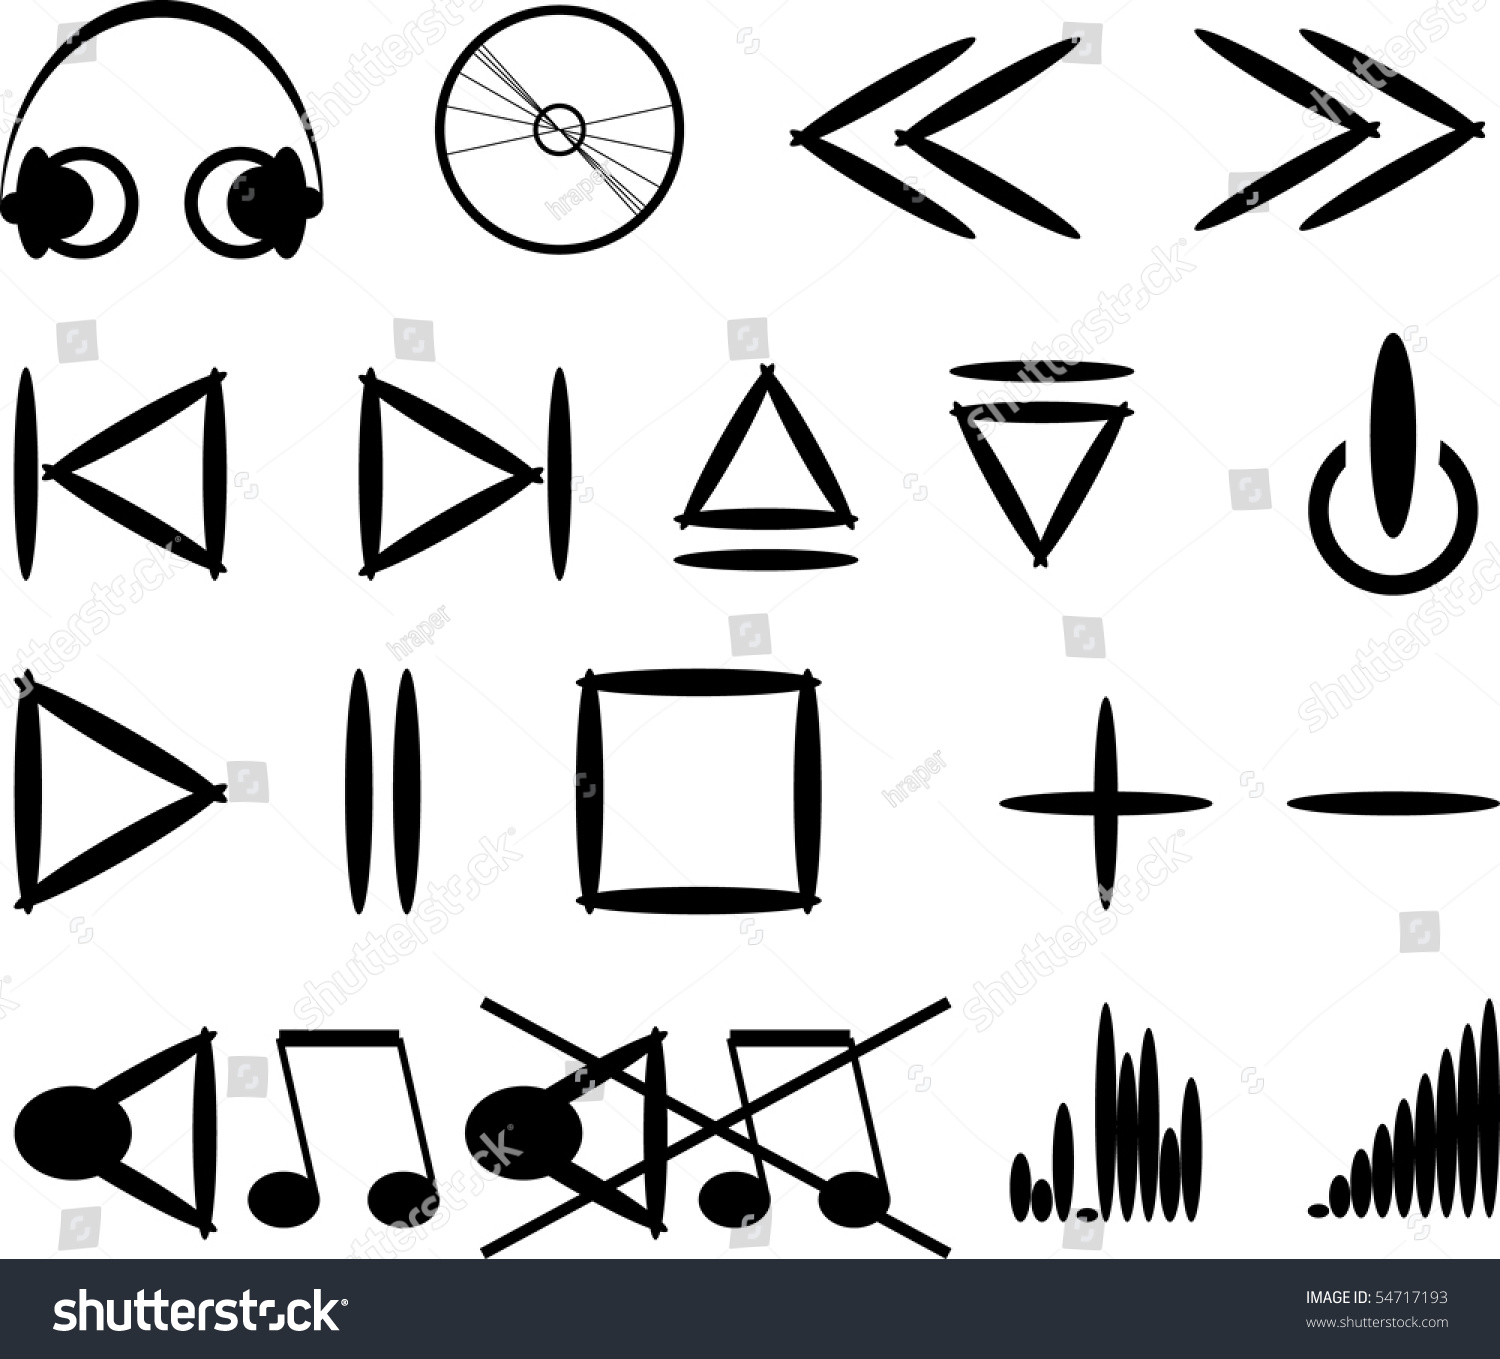 Vector music symbols icons stock vector 54717193 shutterstock vector music symbols and icons buycottarizona Gallery